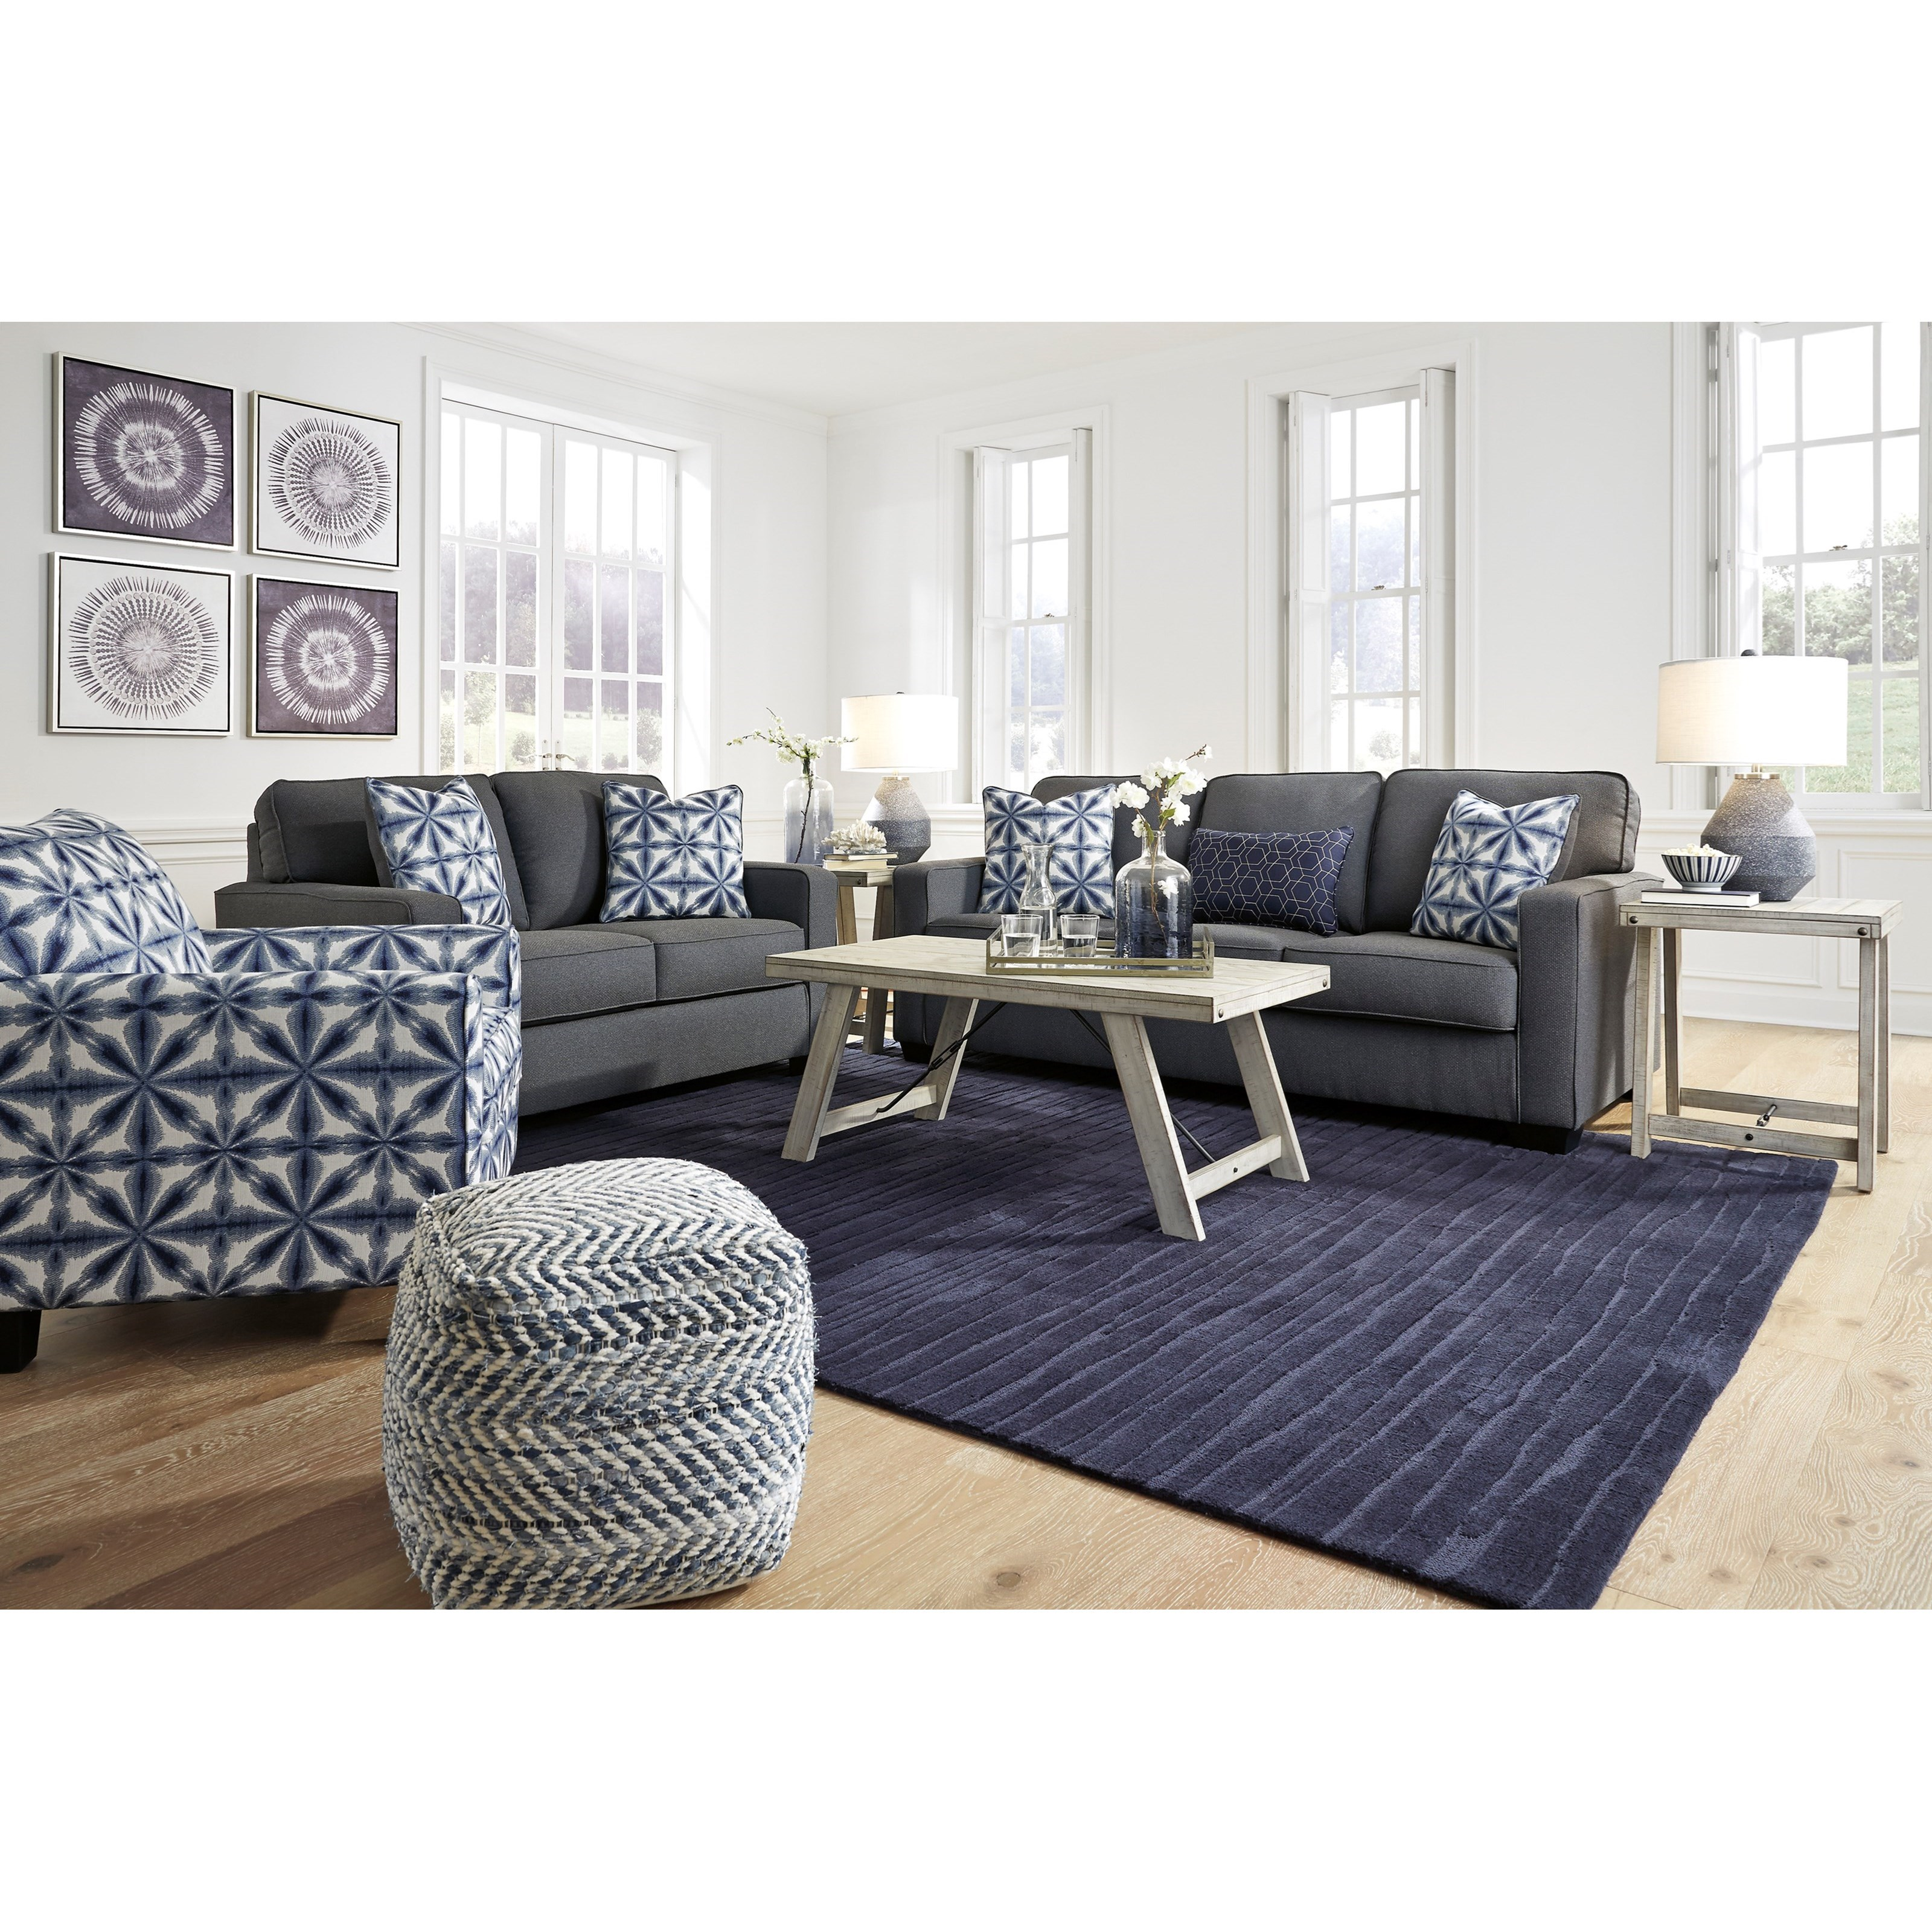 Kiessel Nuvella Living Room Group by Benchcraft at Beds N Stuff